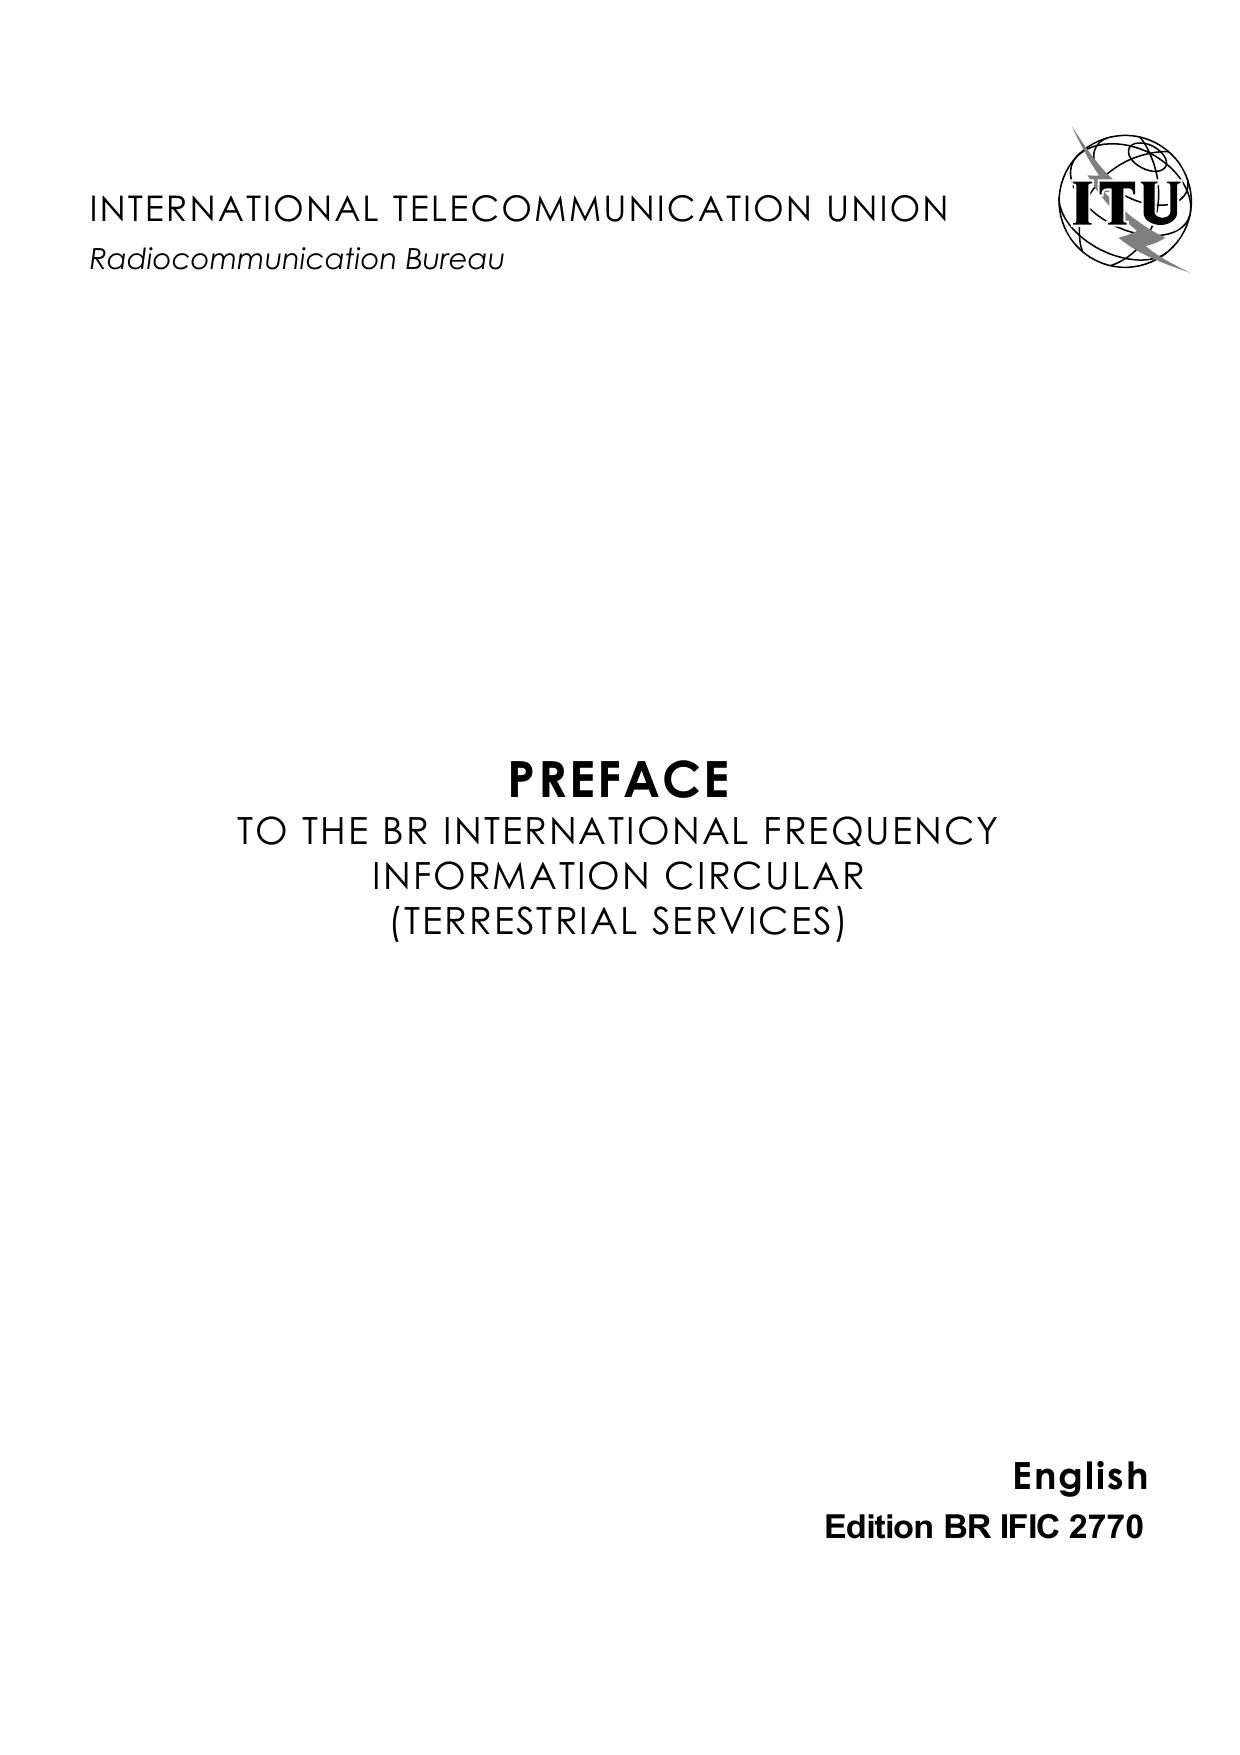 PREFACE TO THE BR INTERNATIONAL FREQUENCY INFORMATION